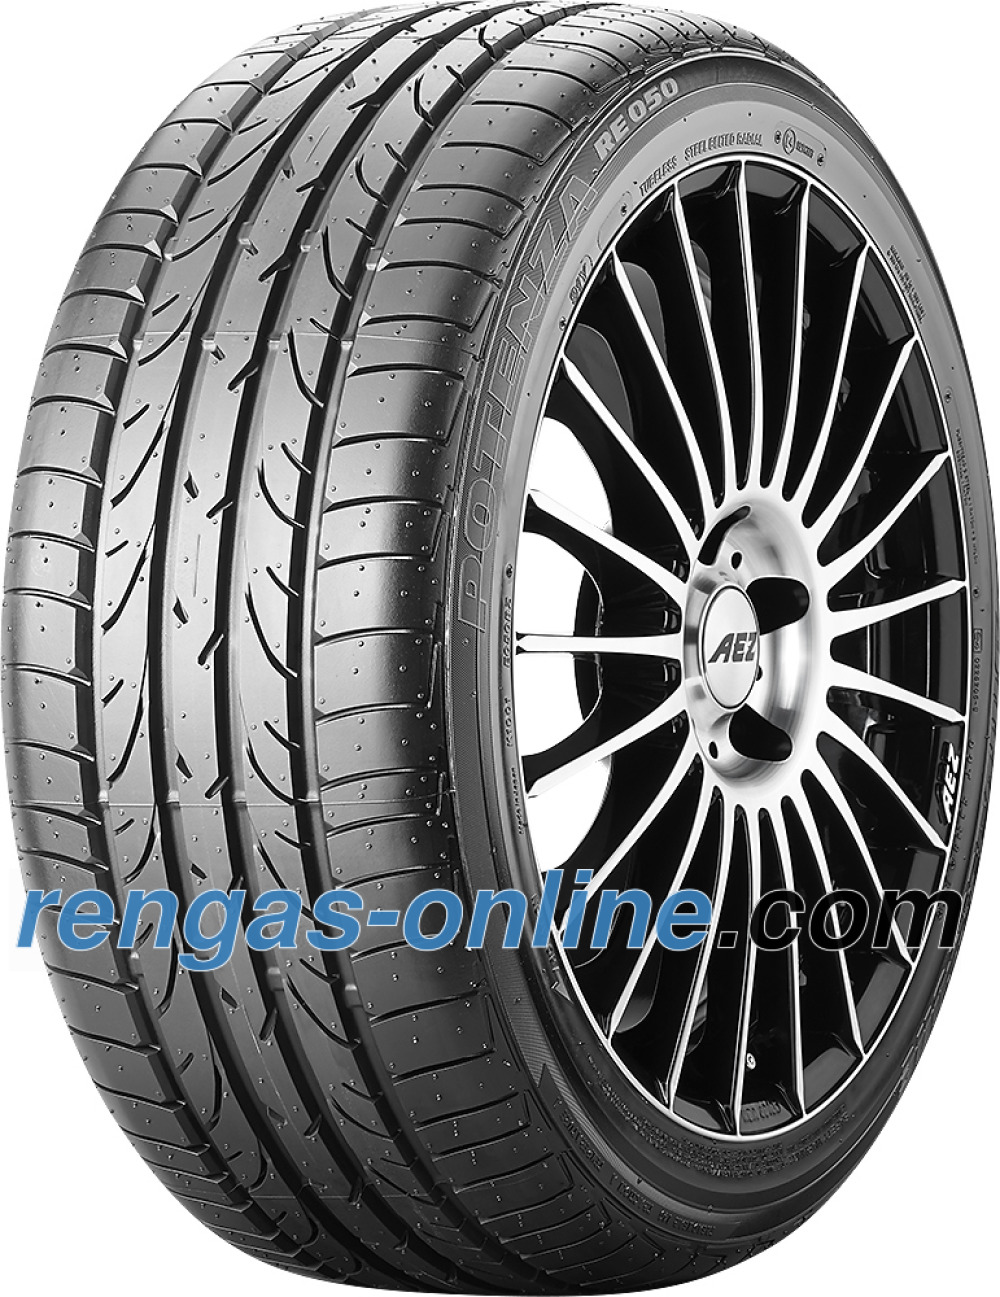 bridgestone-potenza-re-050-25540-zr19-100y-xl-mo